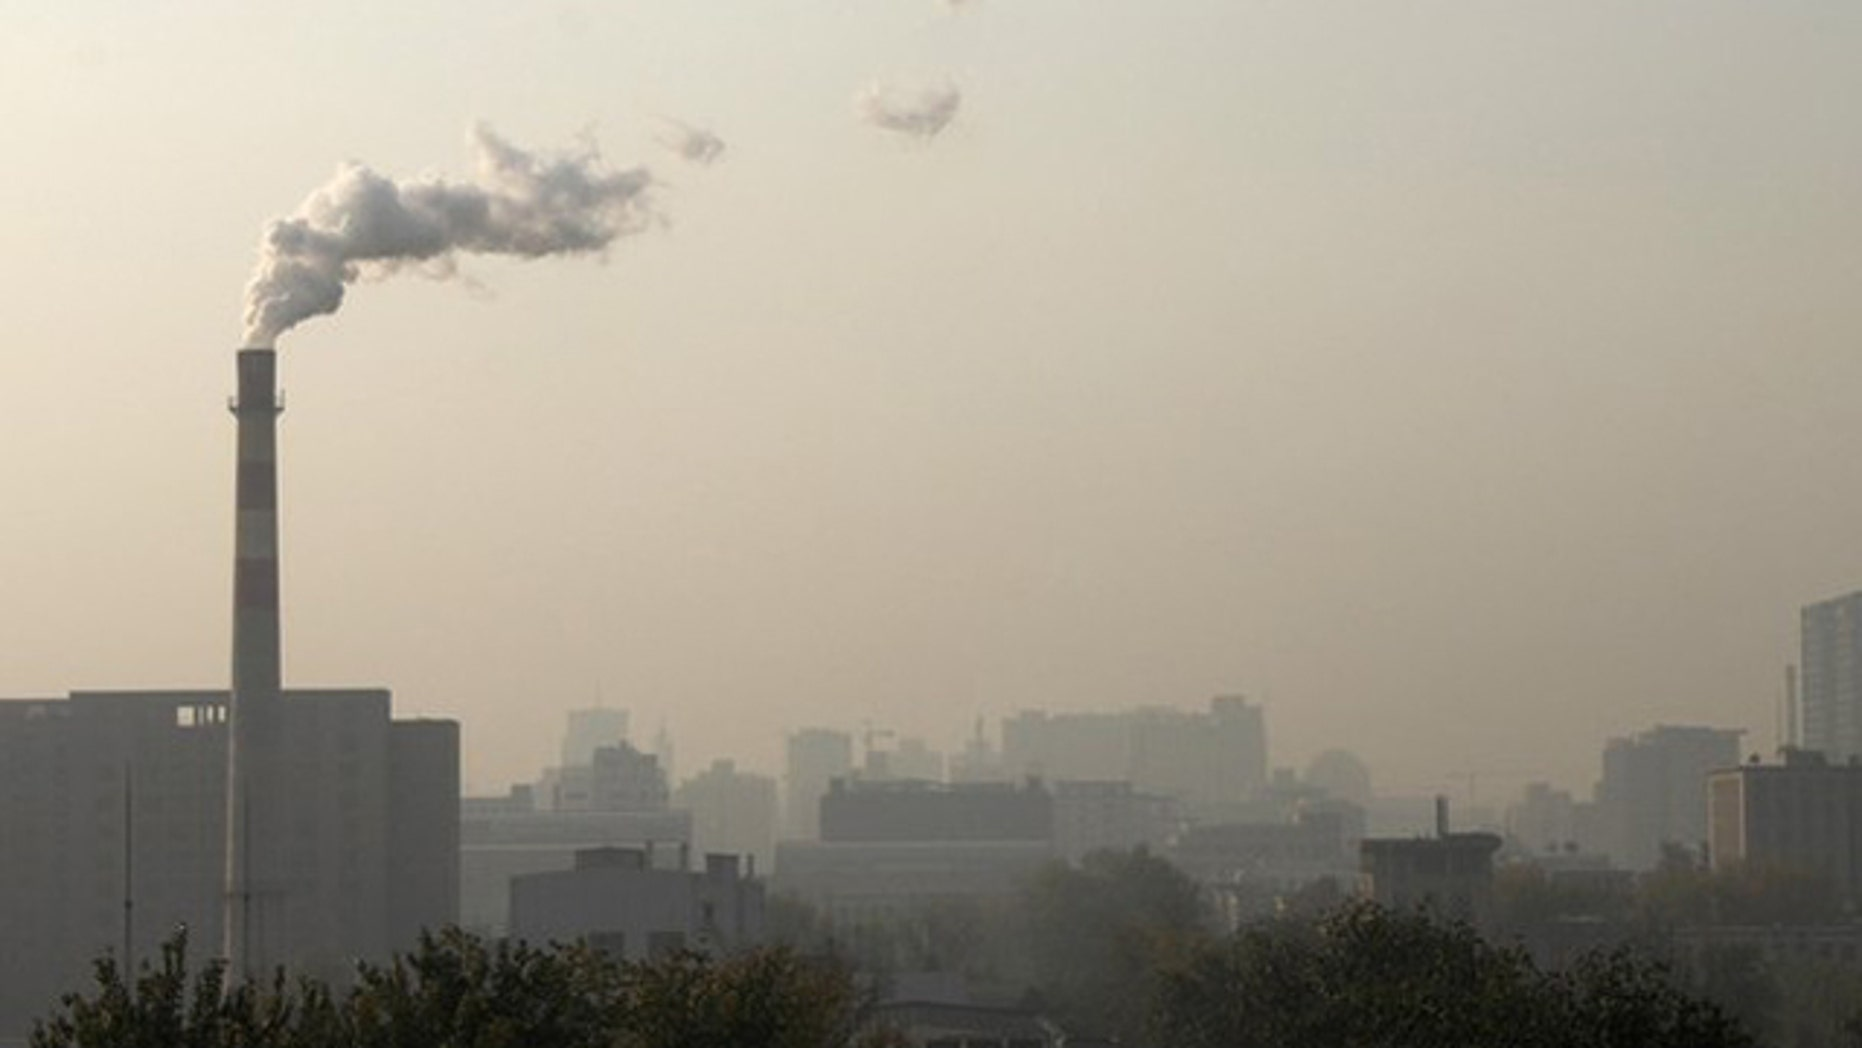 Smoke billows from a chimney of a heating plant in Beijing on Nov. 6, 2010. A new congressional report shows hundreds of EPA grants went overseas to fund environmental projects including an anti-air pollution initiative in China.